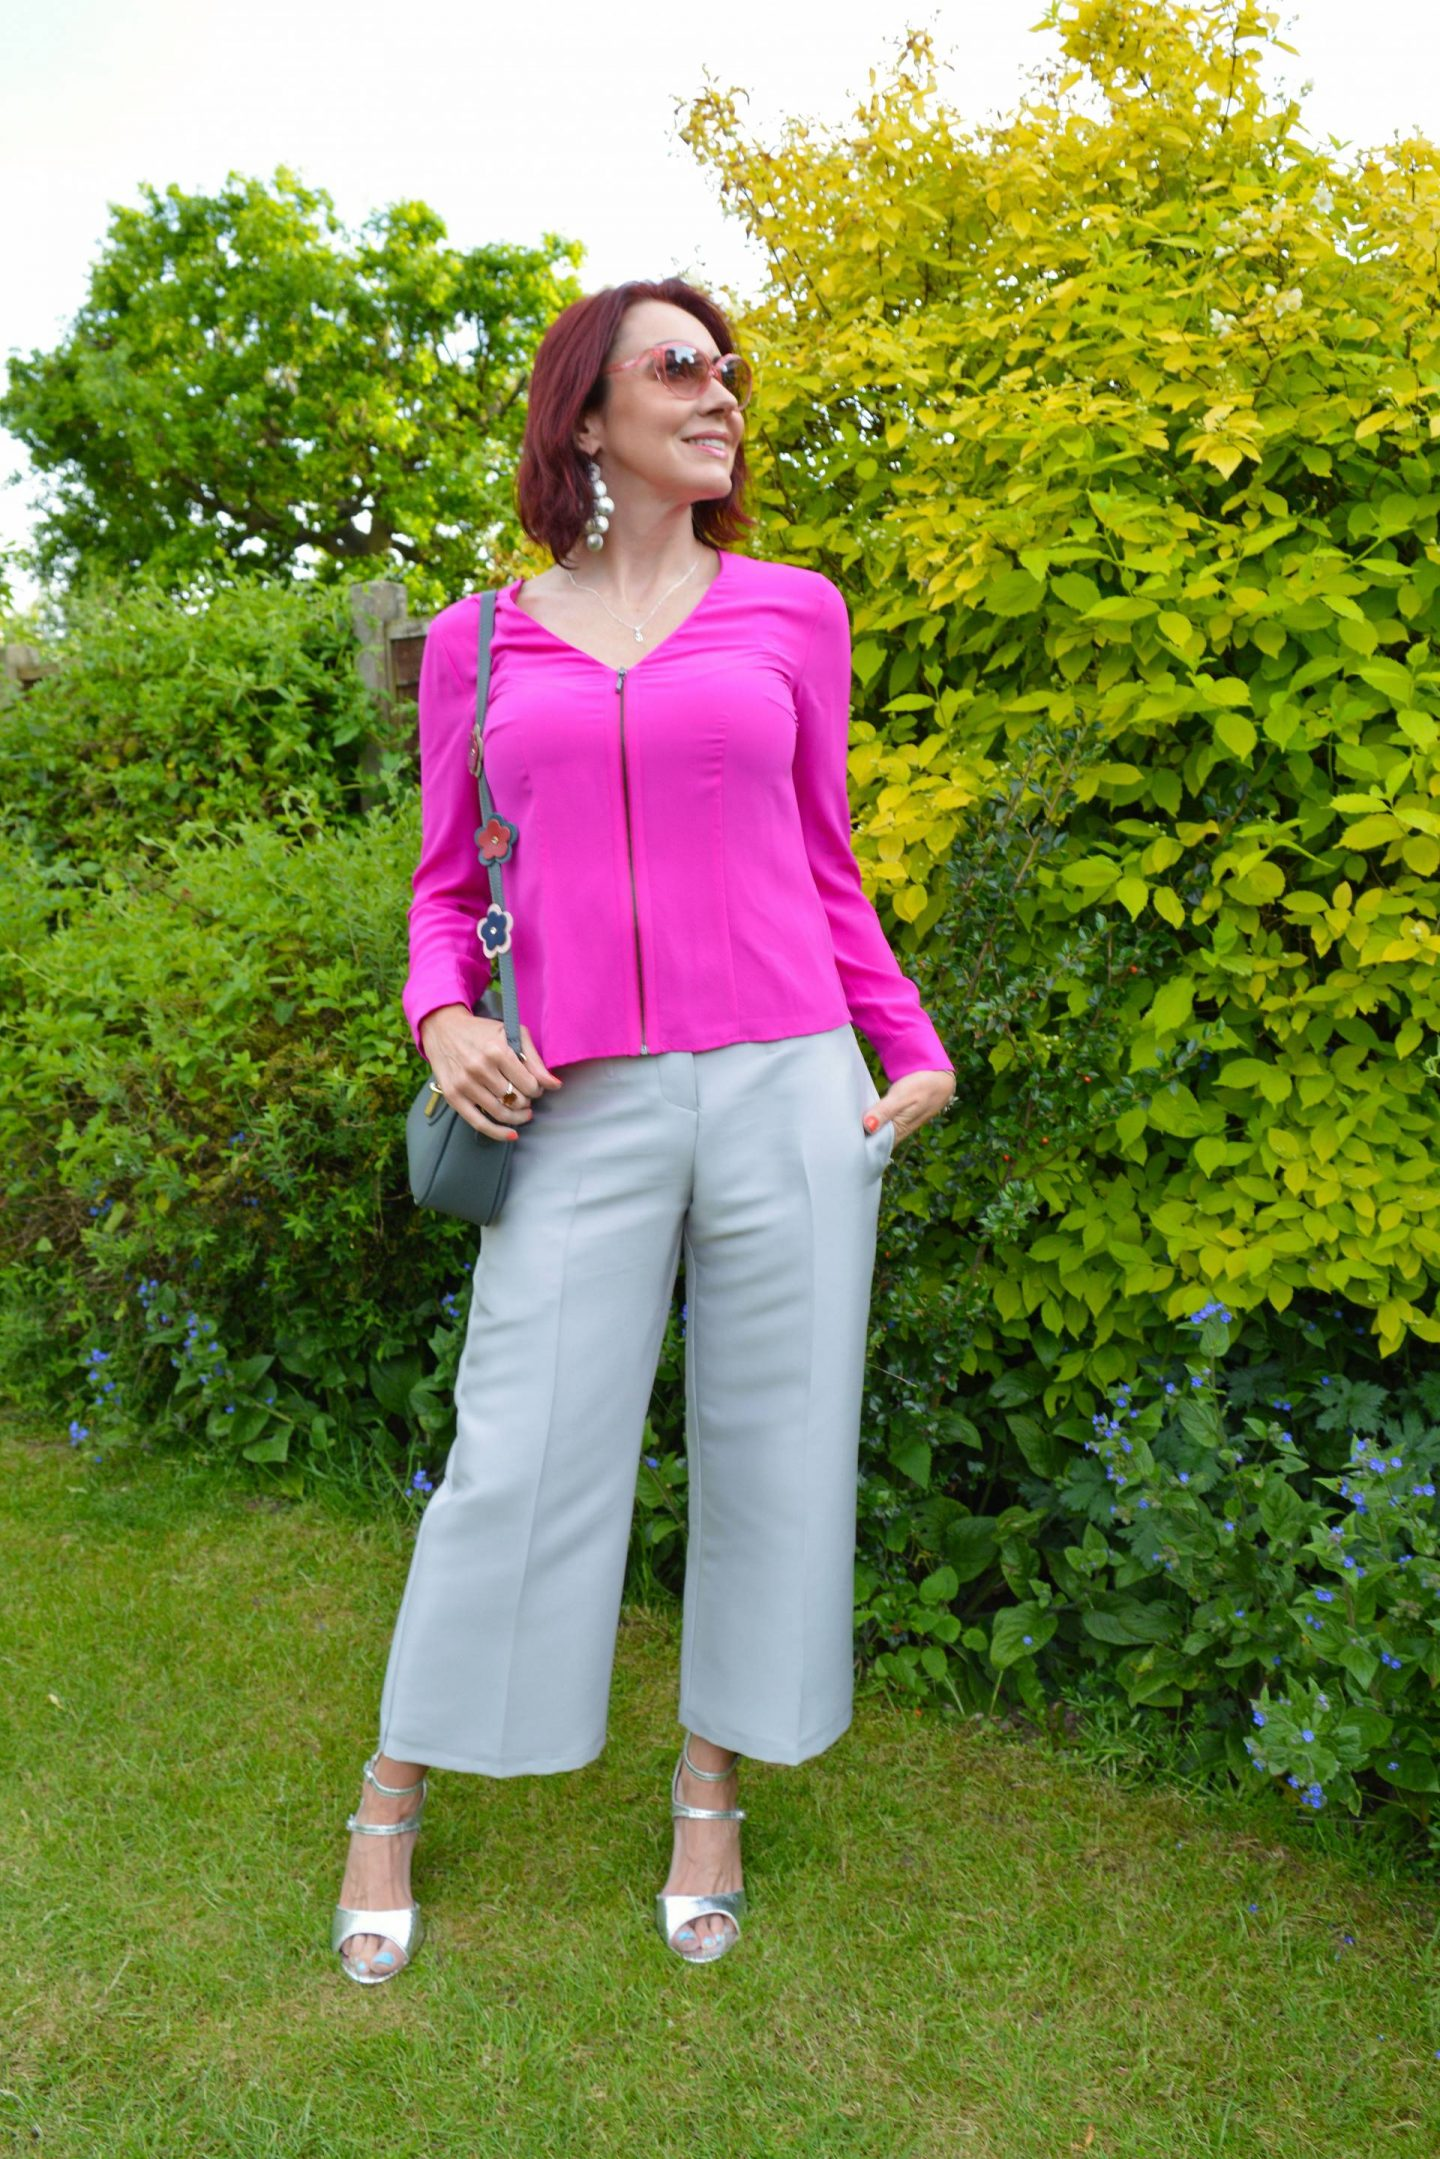 Outline silver cropped trousers and hot pink blouse